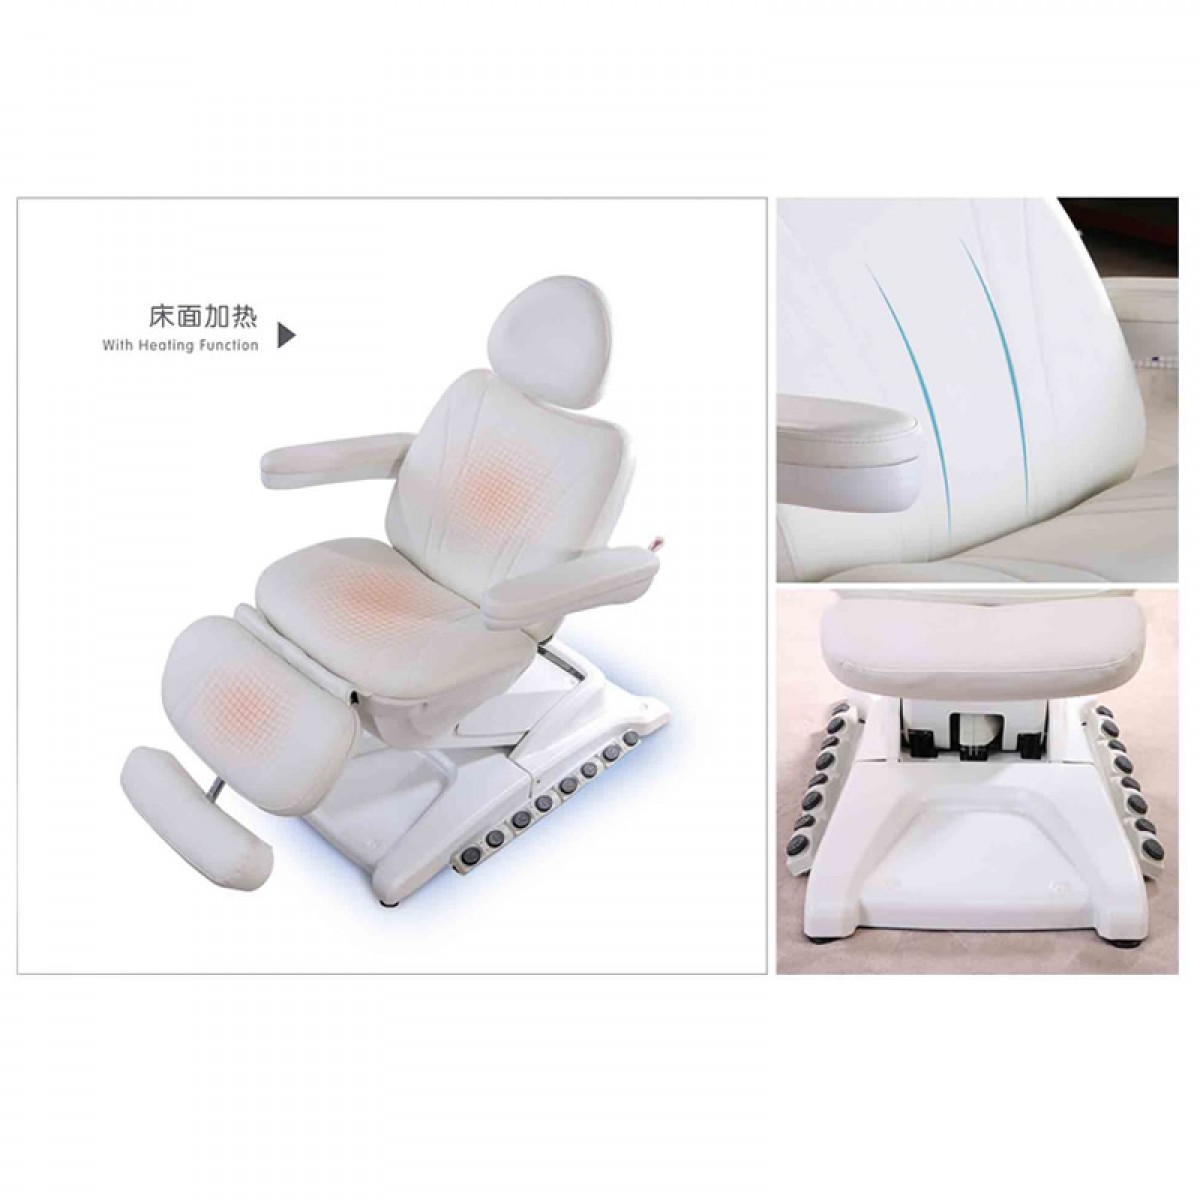 Salon furniture supplier genuine leather beauty facial bed for manicure treatment